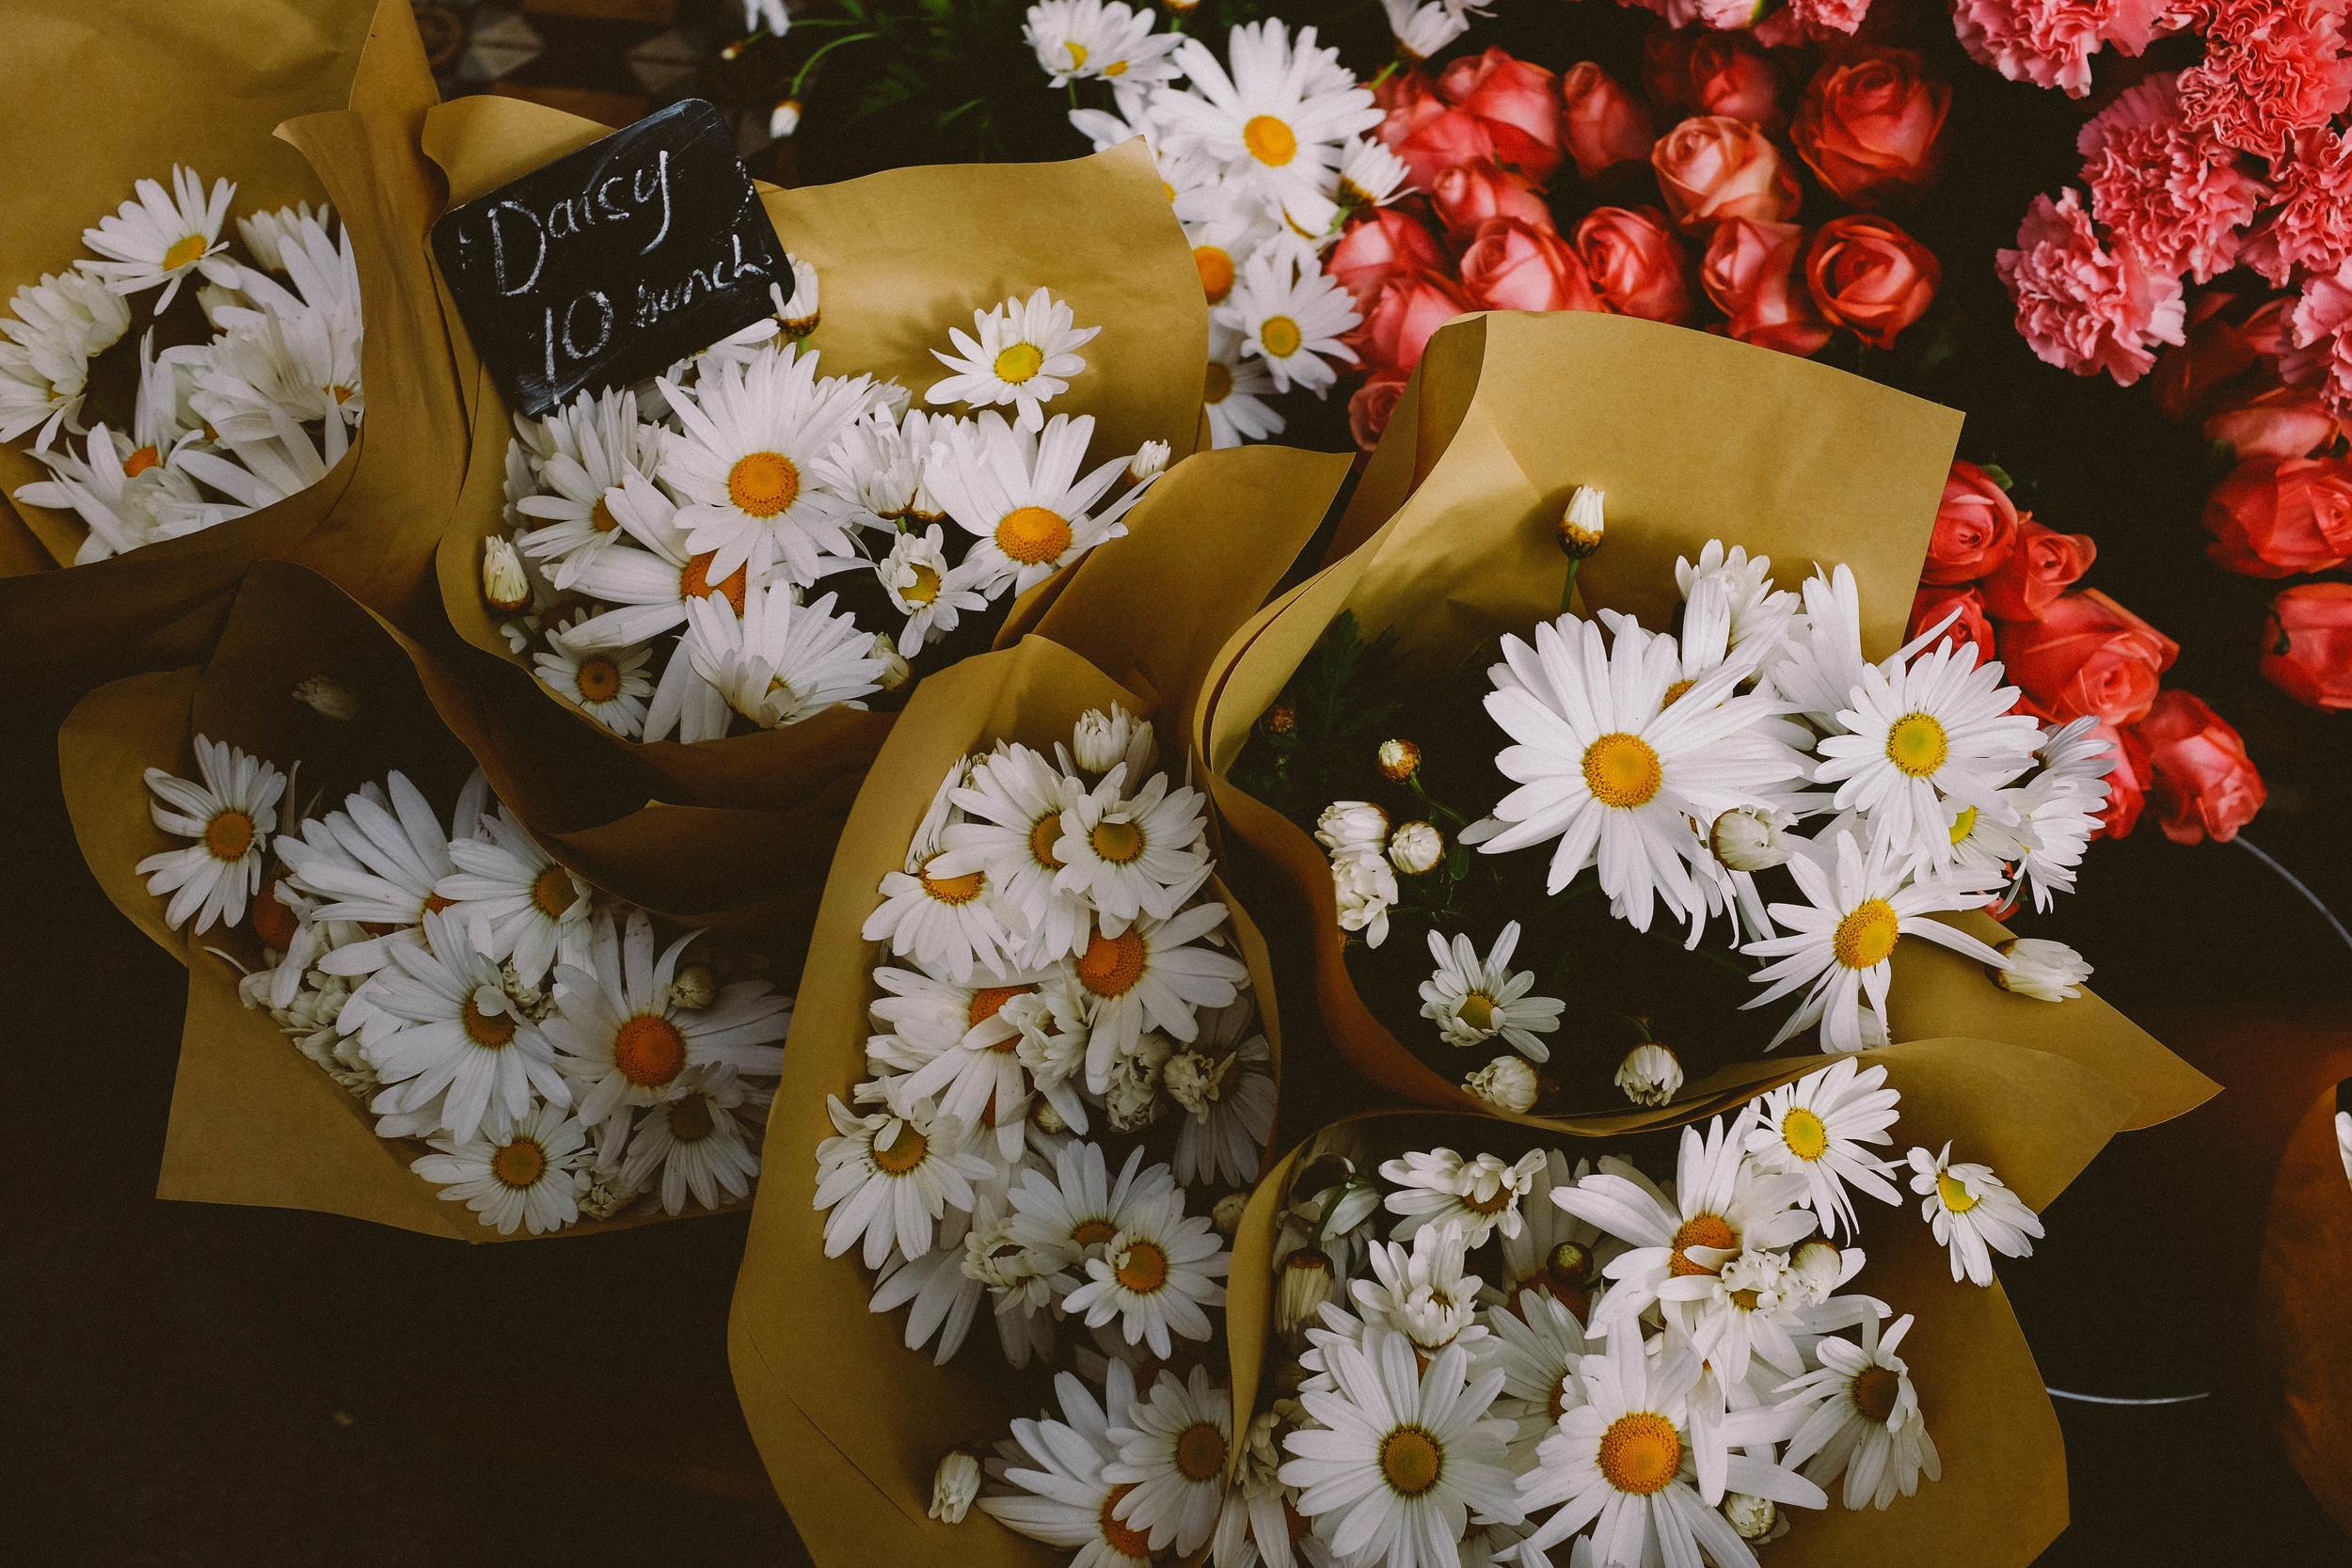 daisies bouquets